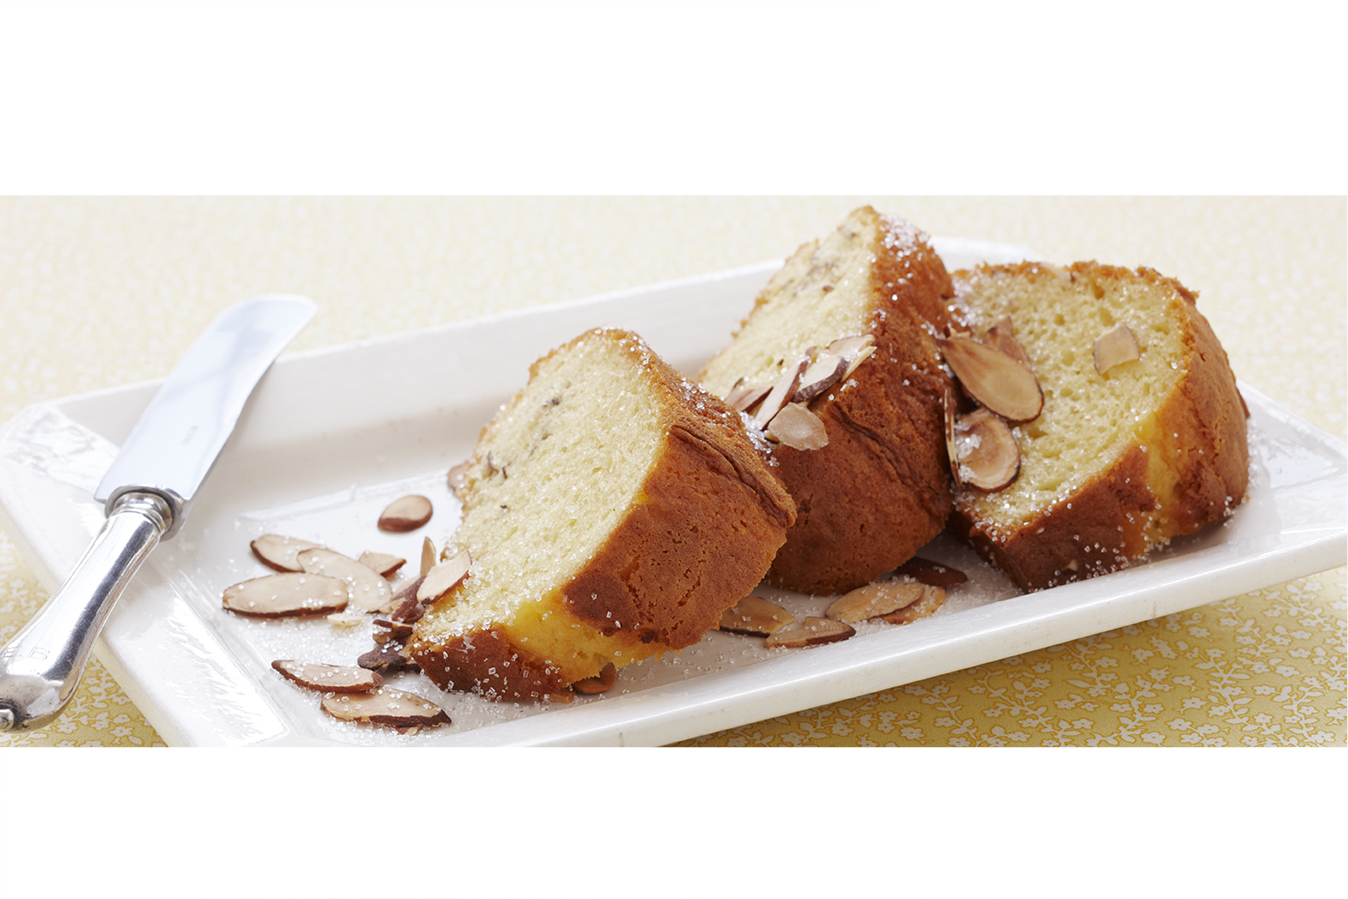 Duncan Hines Butter Recipe Golden Rum Cake